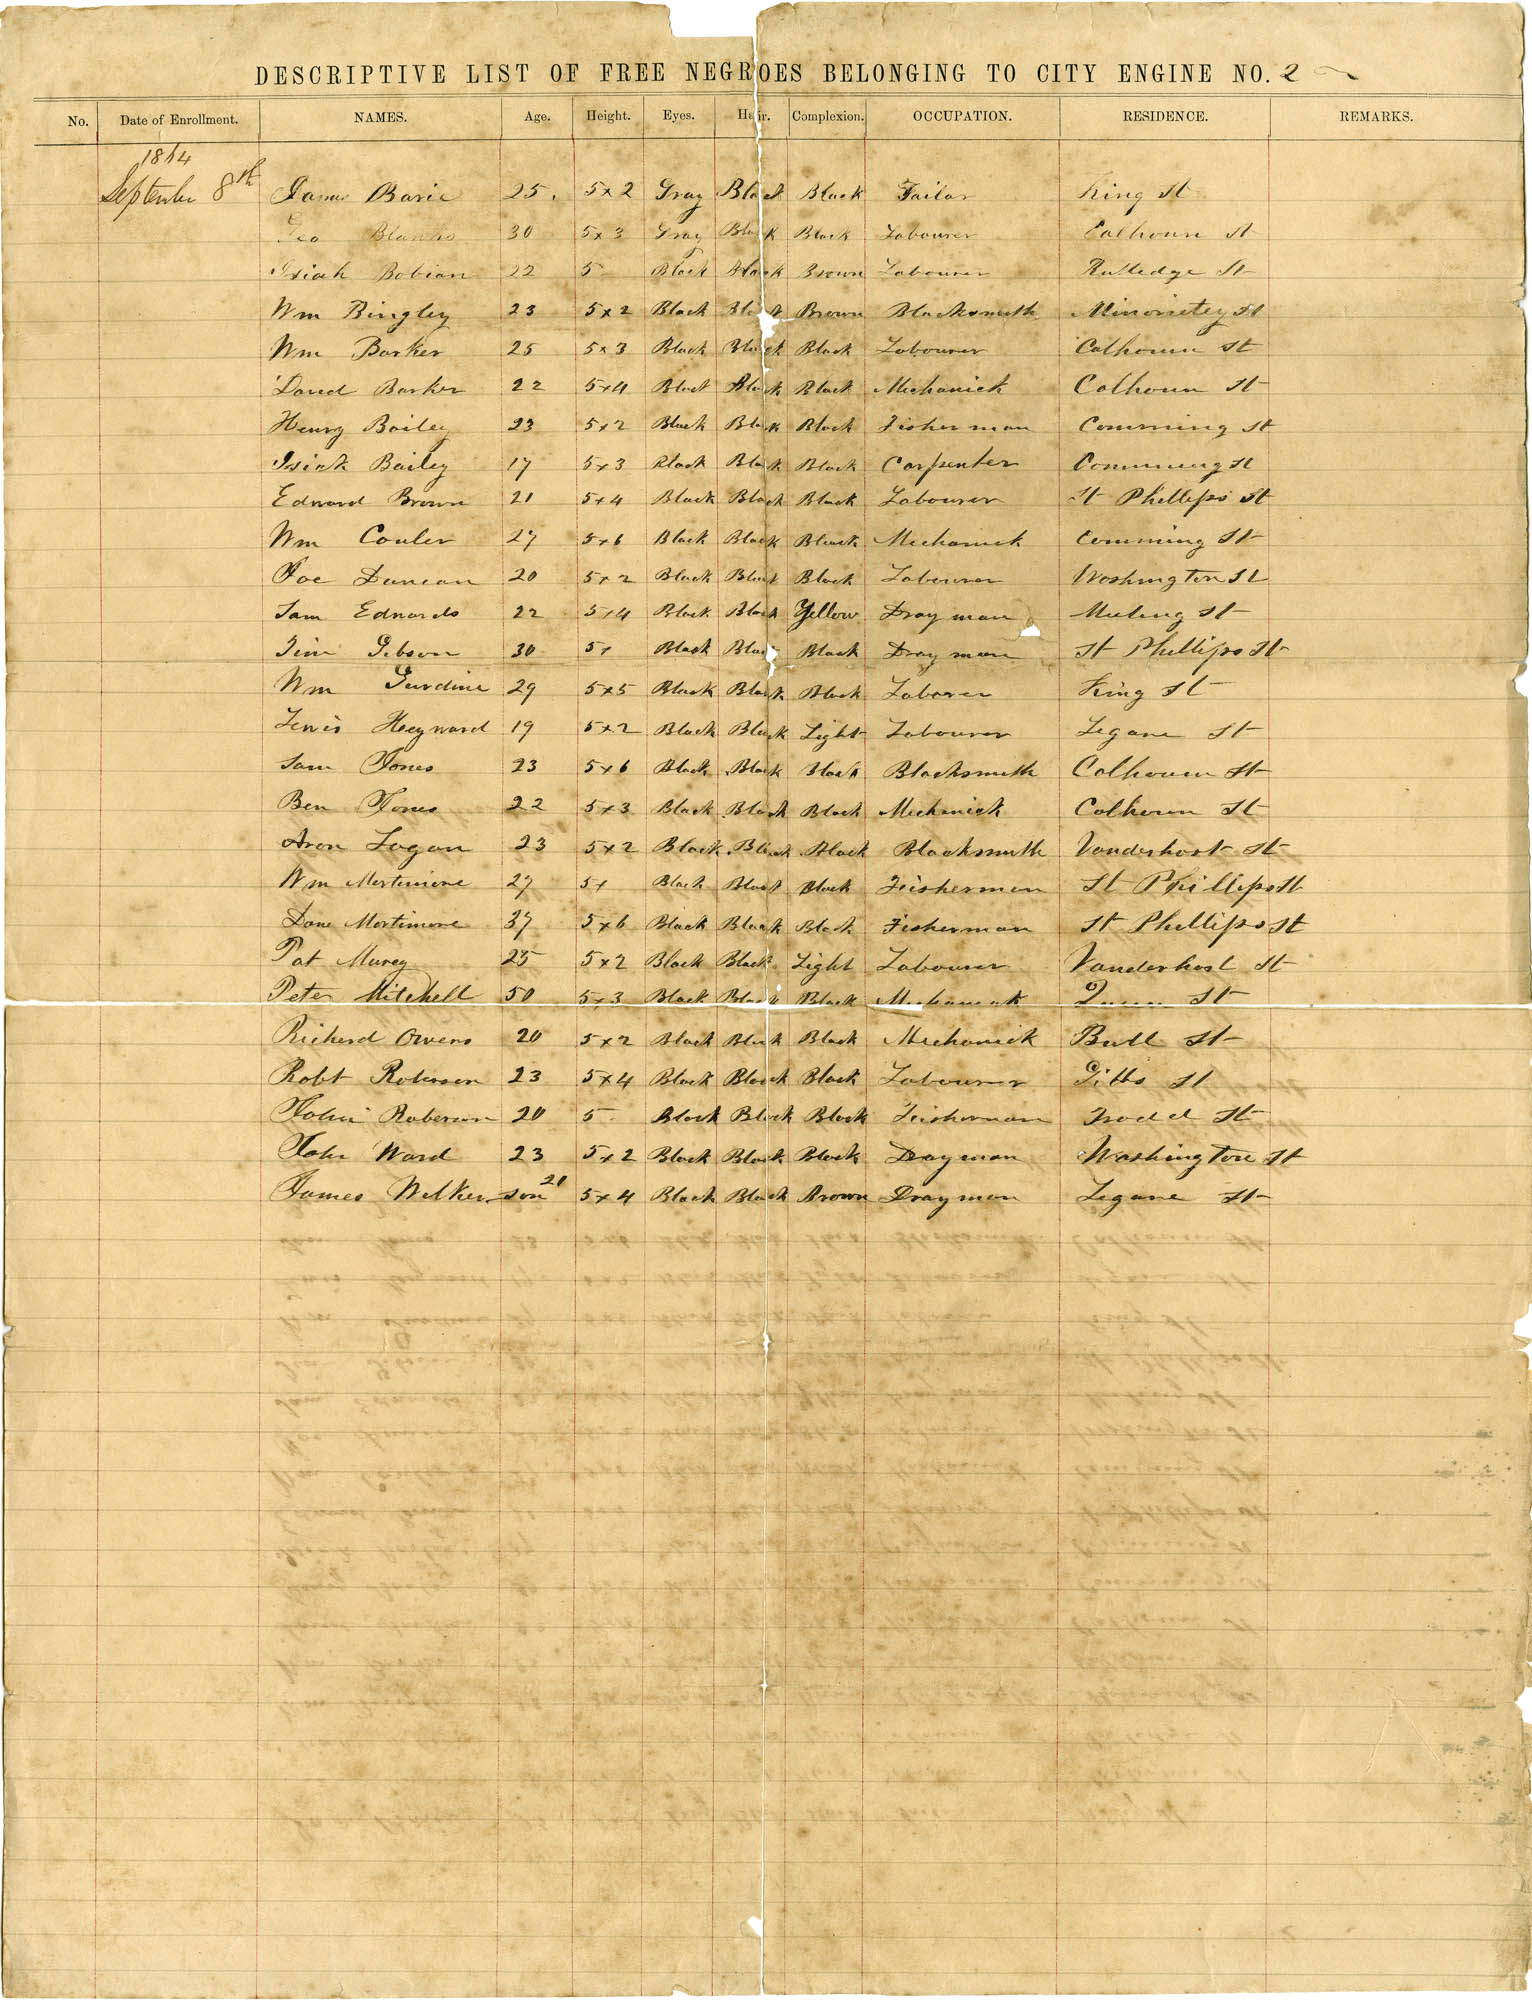 Descriptive List of Free Negroes Belonging to City Engine No. 2